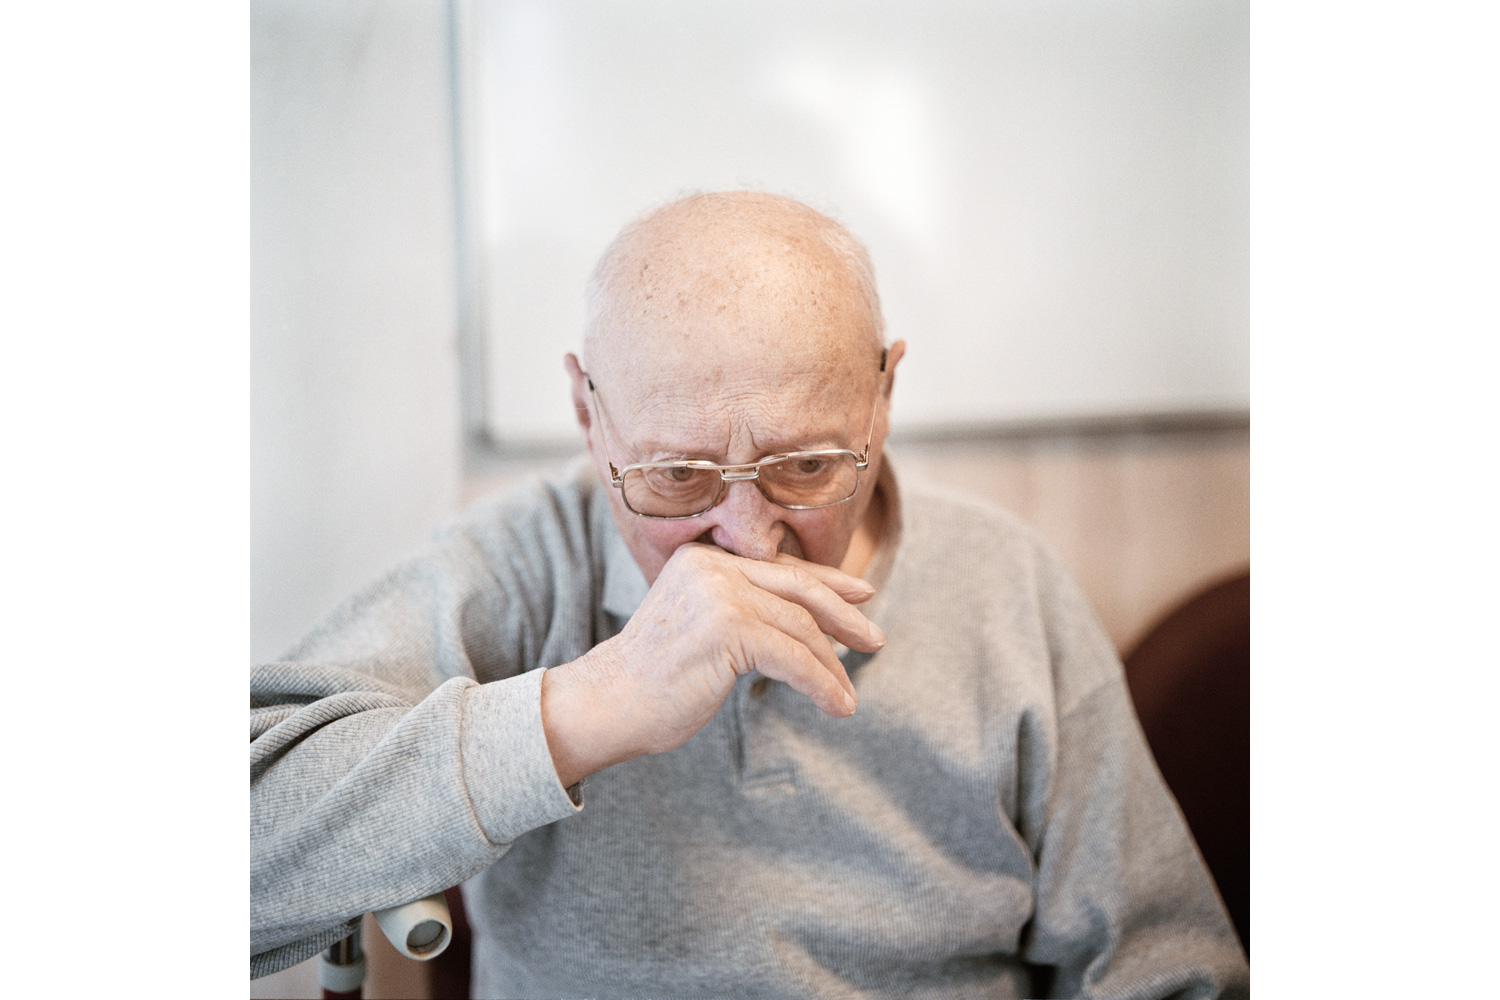 A resident in the Alzheimer's ward expressing confusion and anxiety. A person can live with Alzheimer's disease for about 10 years while a constant degradation of memory and an increasing loss of contact to the outside world can be observed